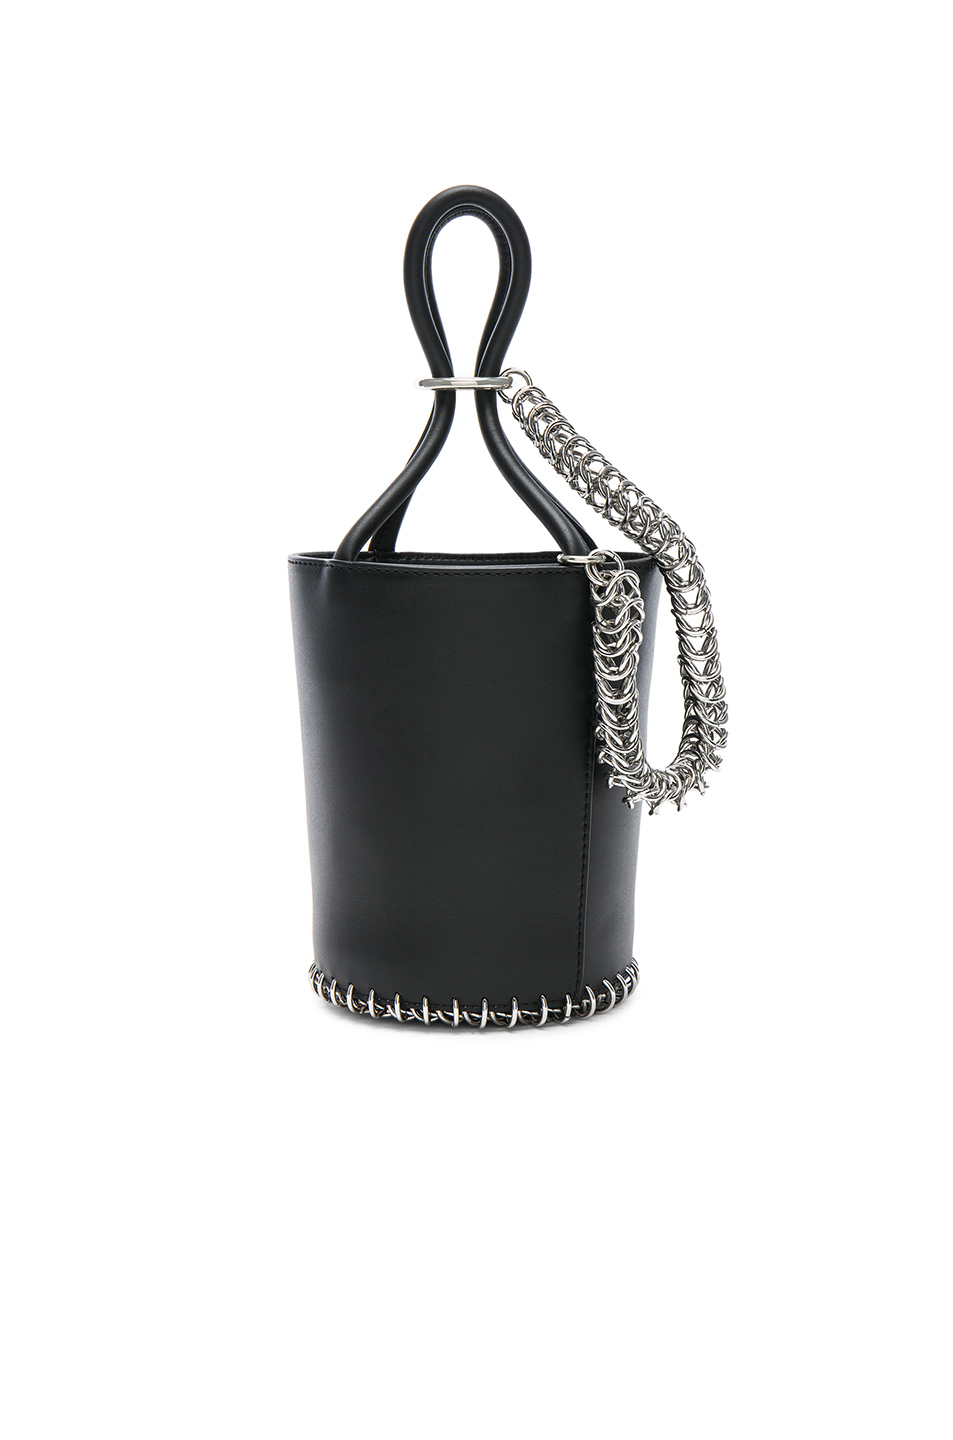 3be58483c6c4 Buy Original Alexander Wang Roxy Mini Bucket Bag at Indonesia